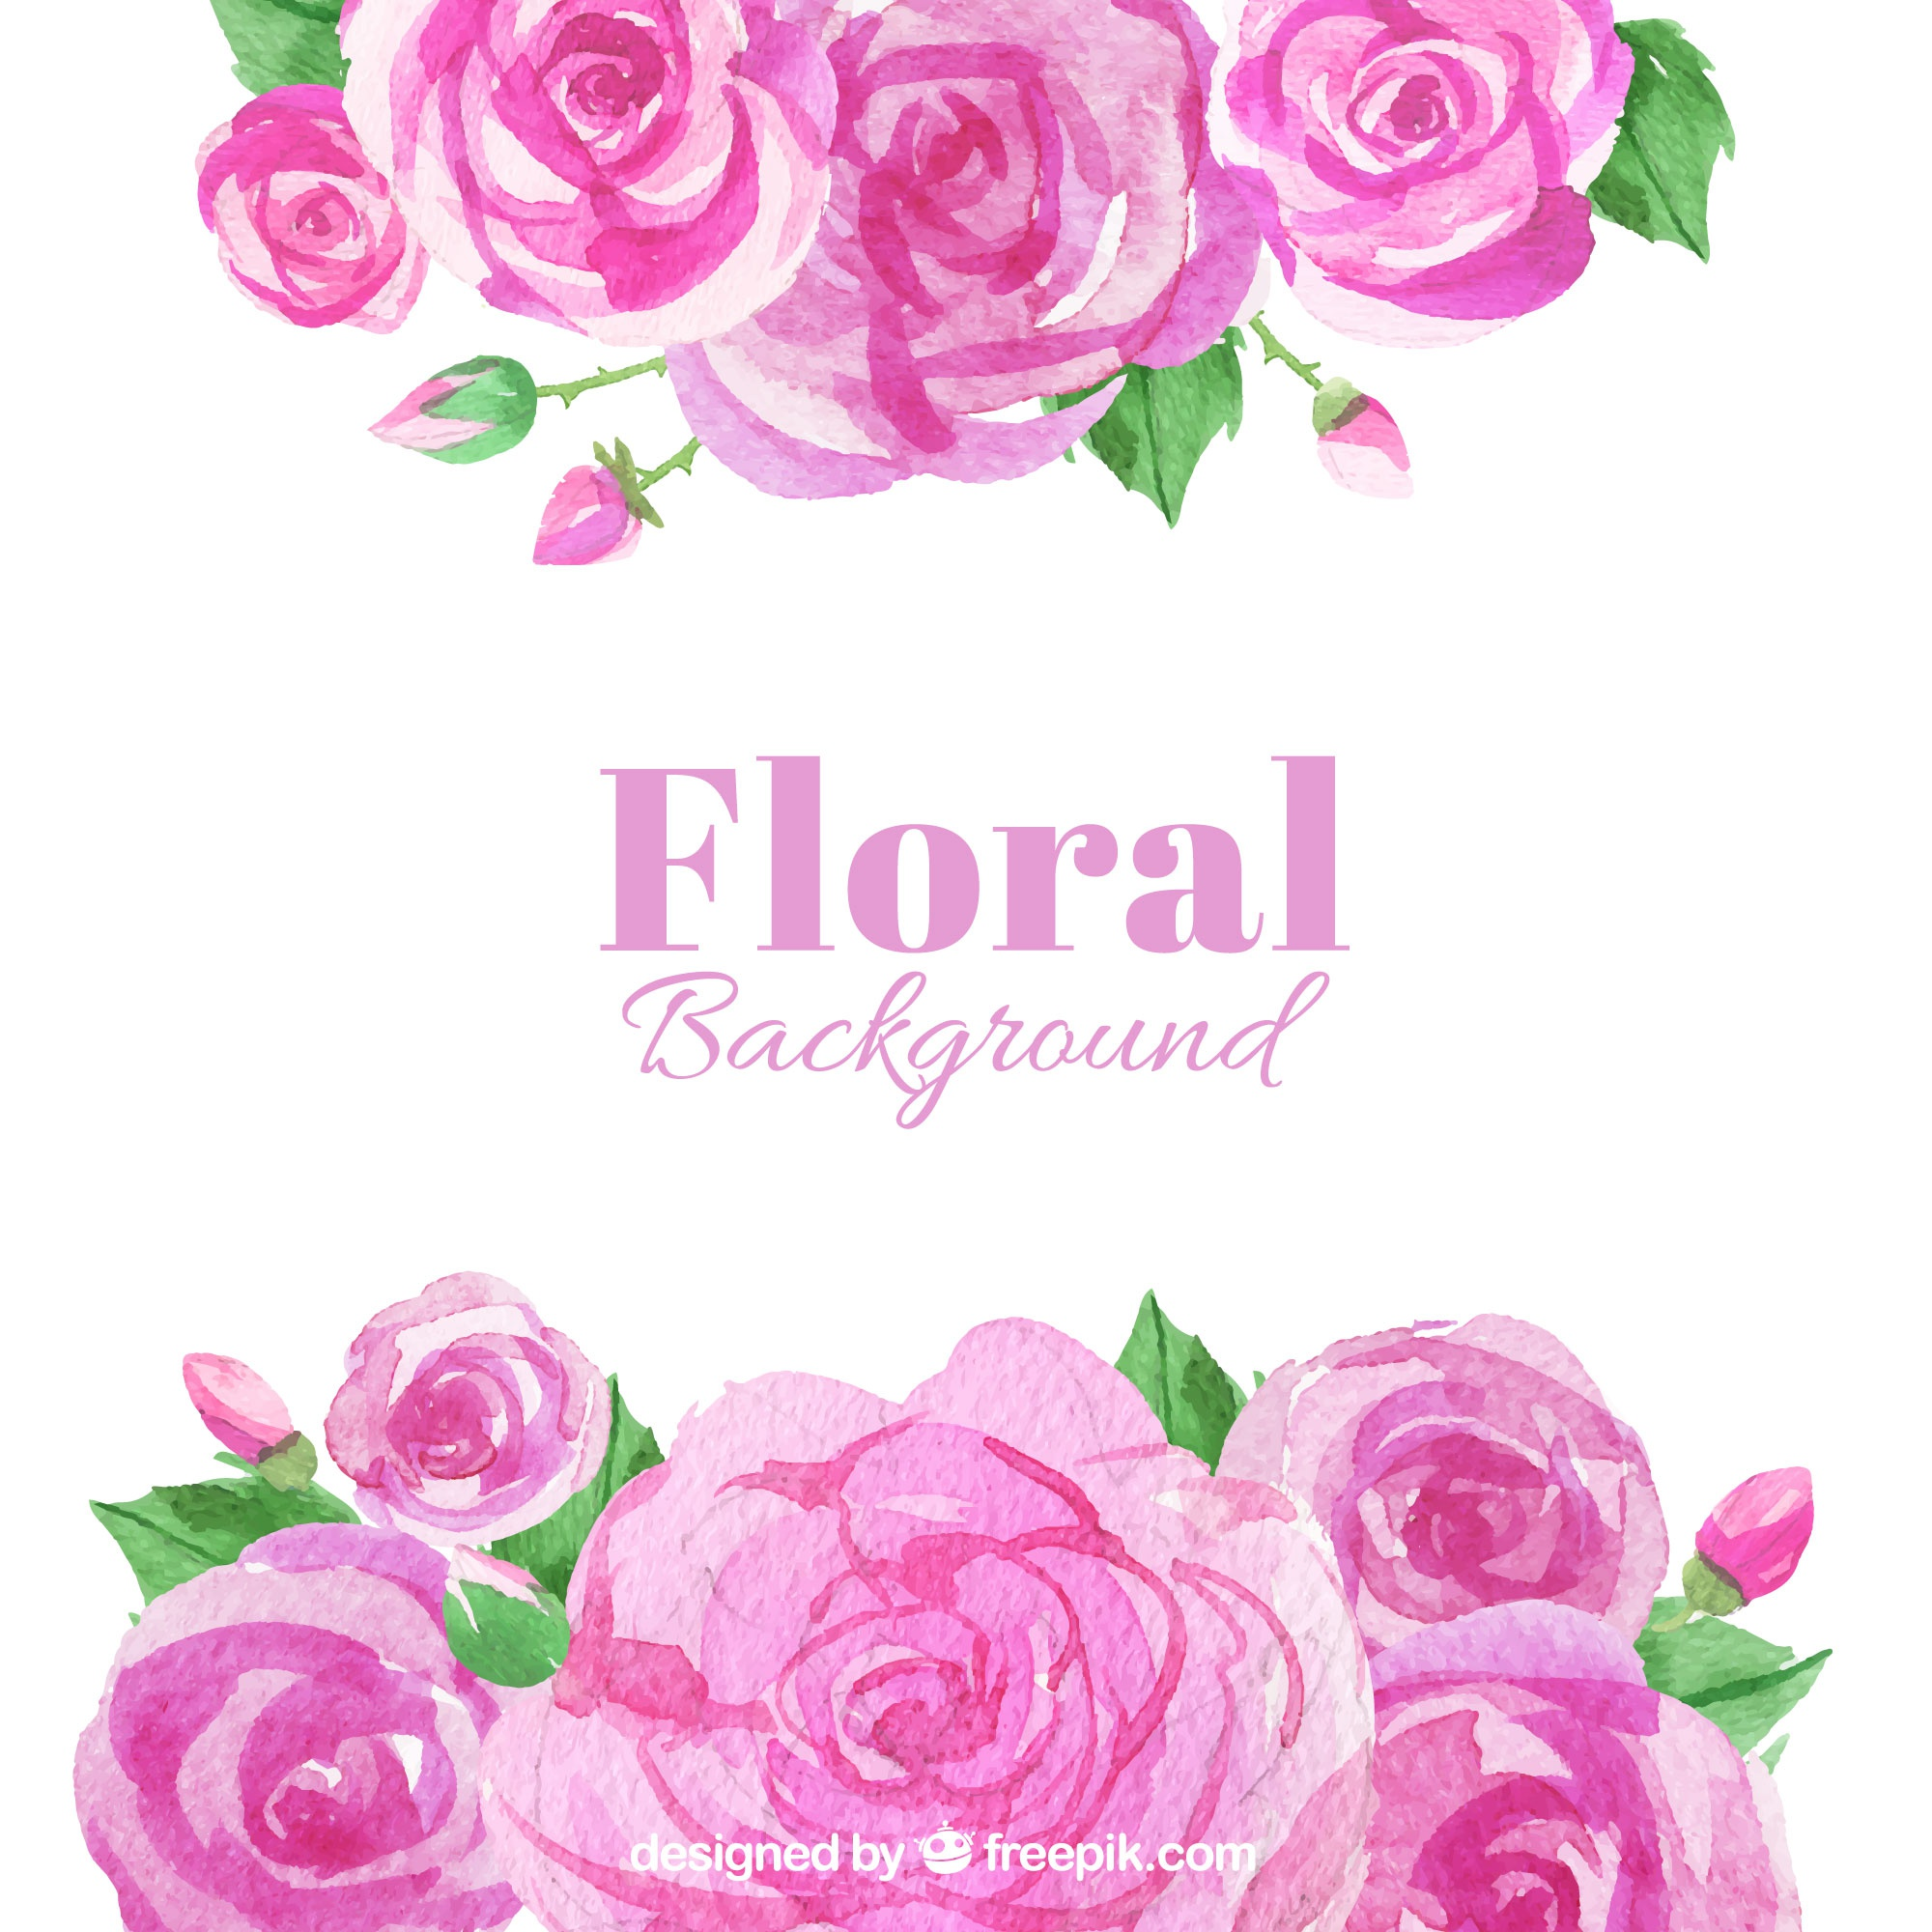 Watercolor background of roses in pink tones